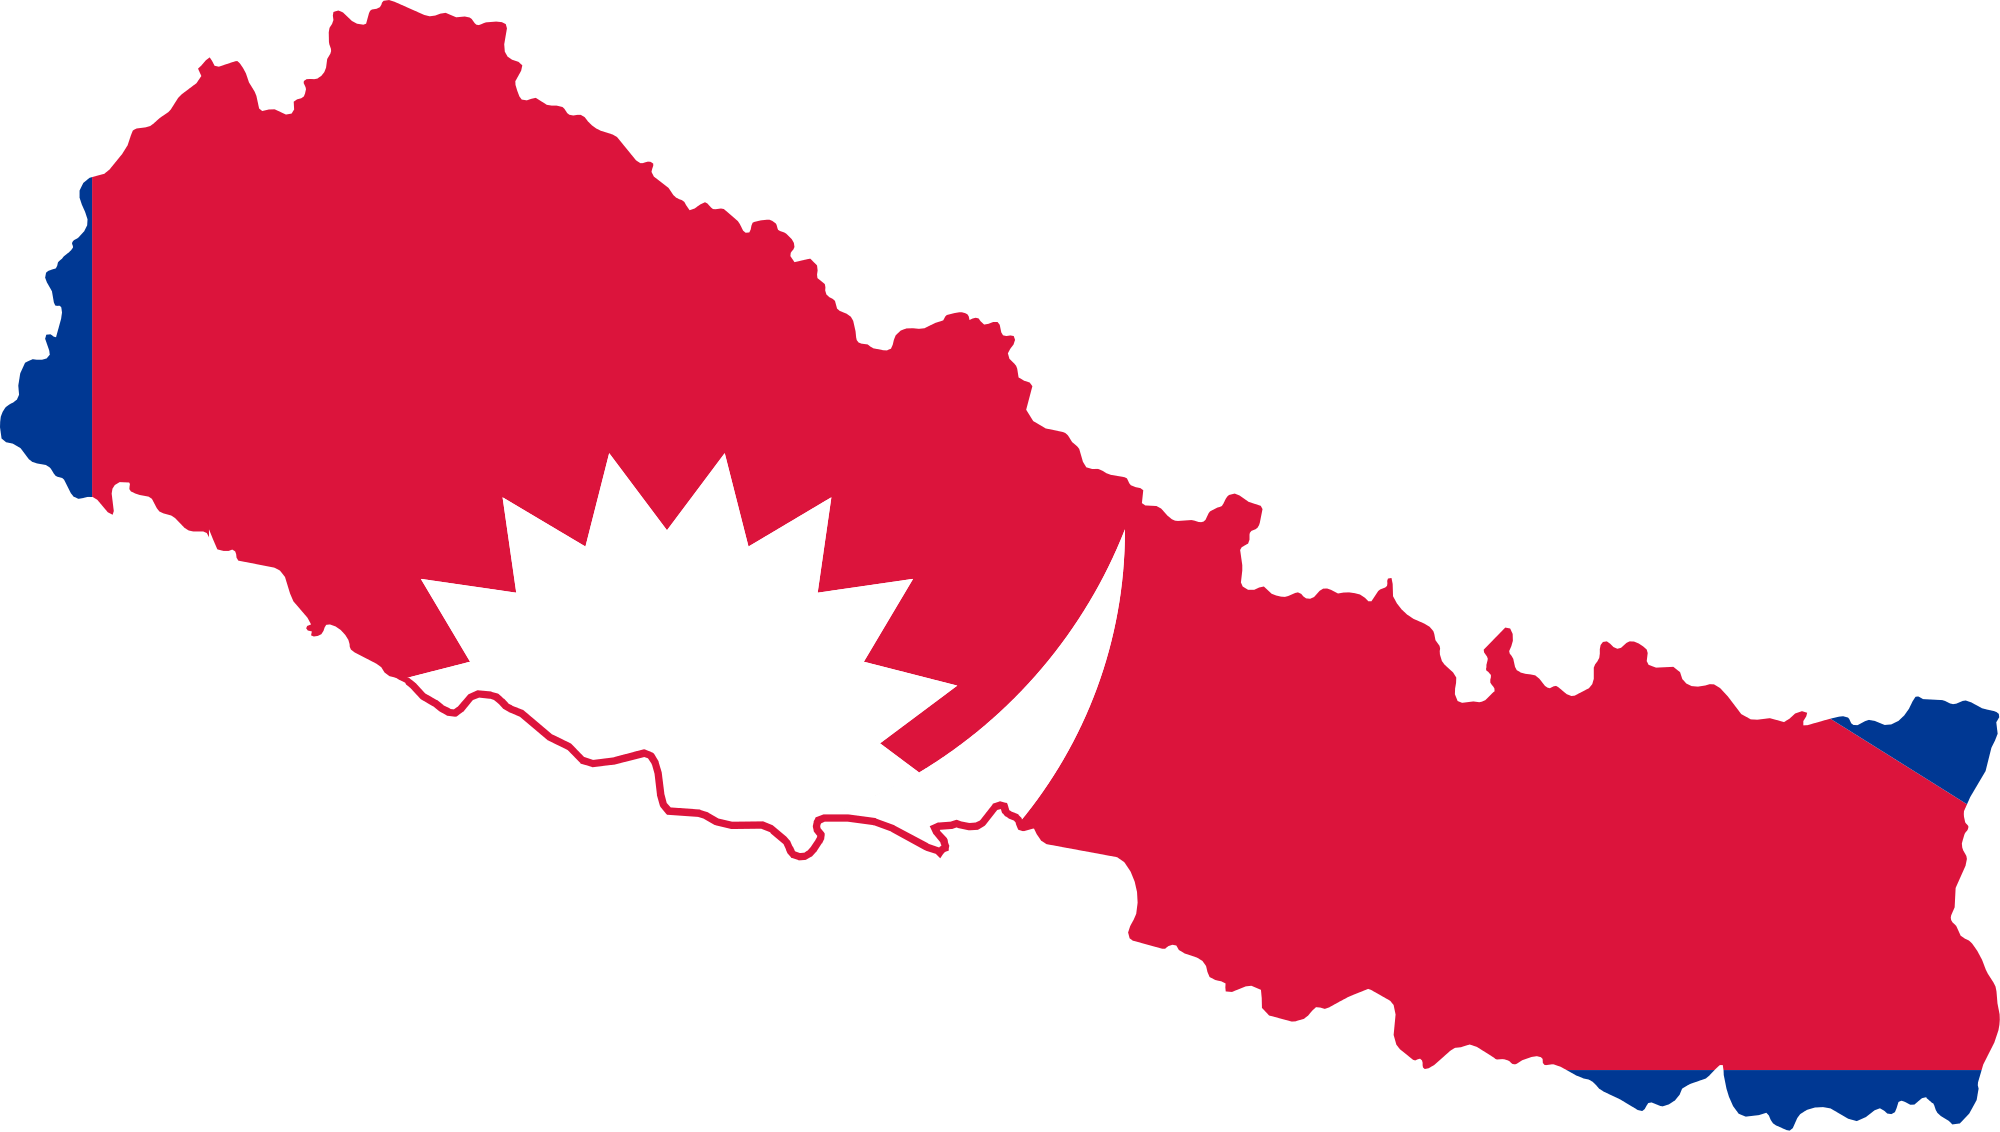 Nepal Map With Flag